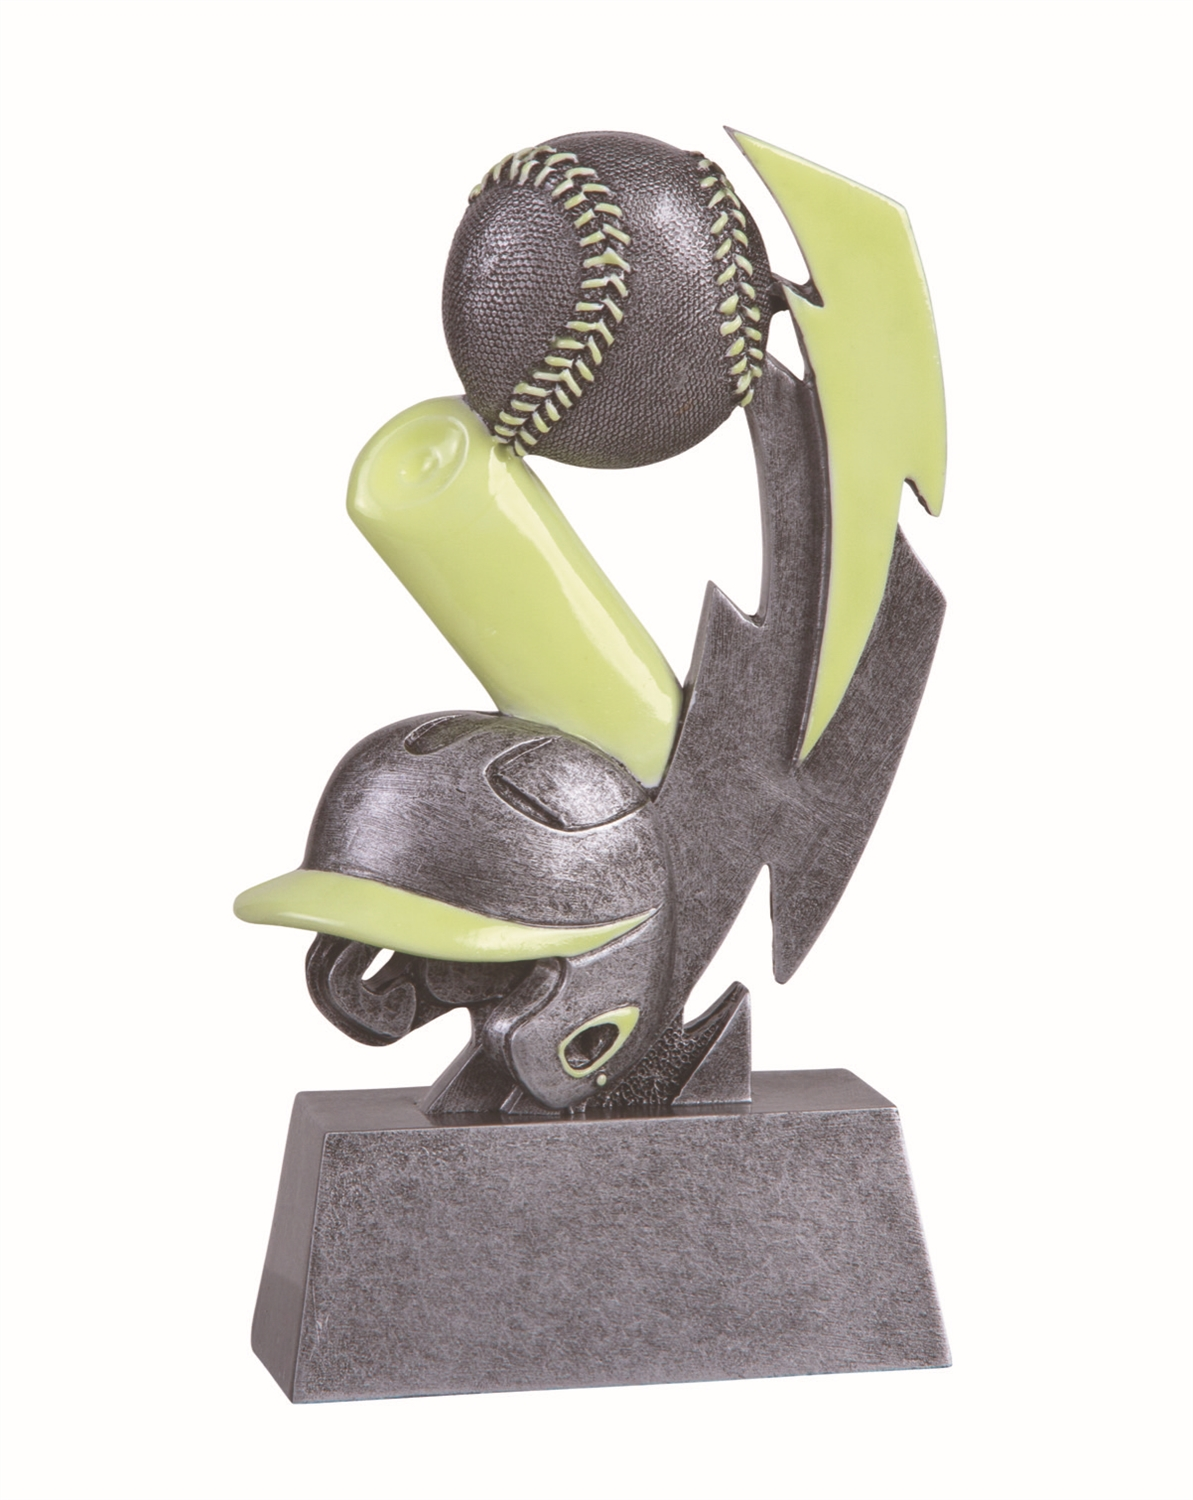 Glow in the Dark Baseball Trophy